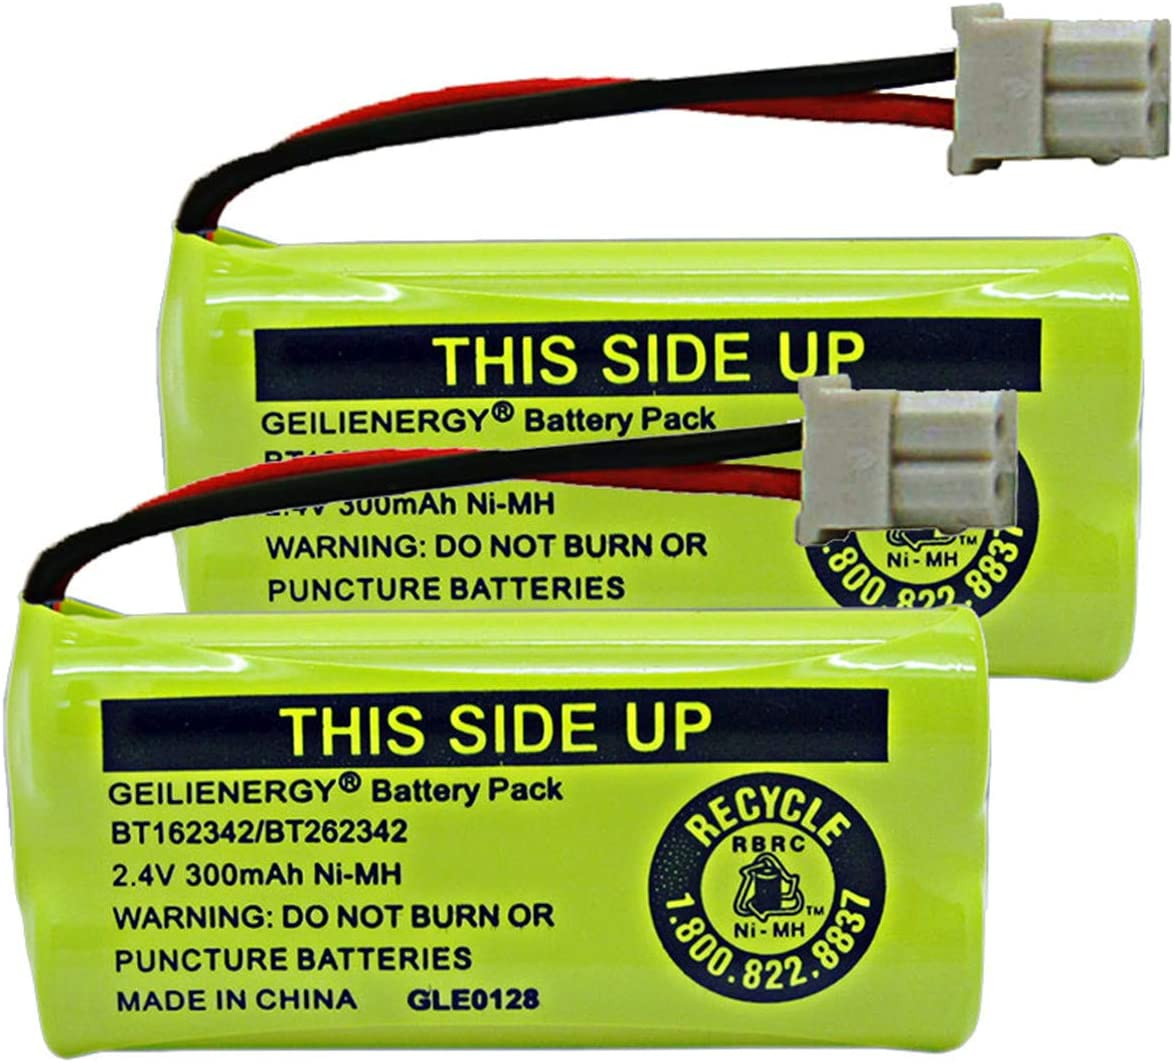 GEILIENERGY 2.4V 300mAh Battery Compatible with AT&T BT162342 BT-162342 BT166342 BT-166342 BT266342 BT-266342 BT183342 BT-183342 BT283342 BT-283342 CS6719-2 Cordless Phone(Pack of 2)